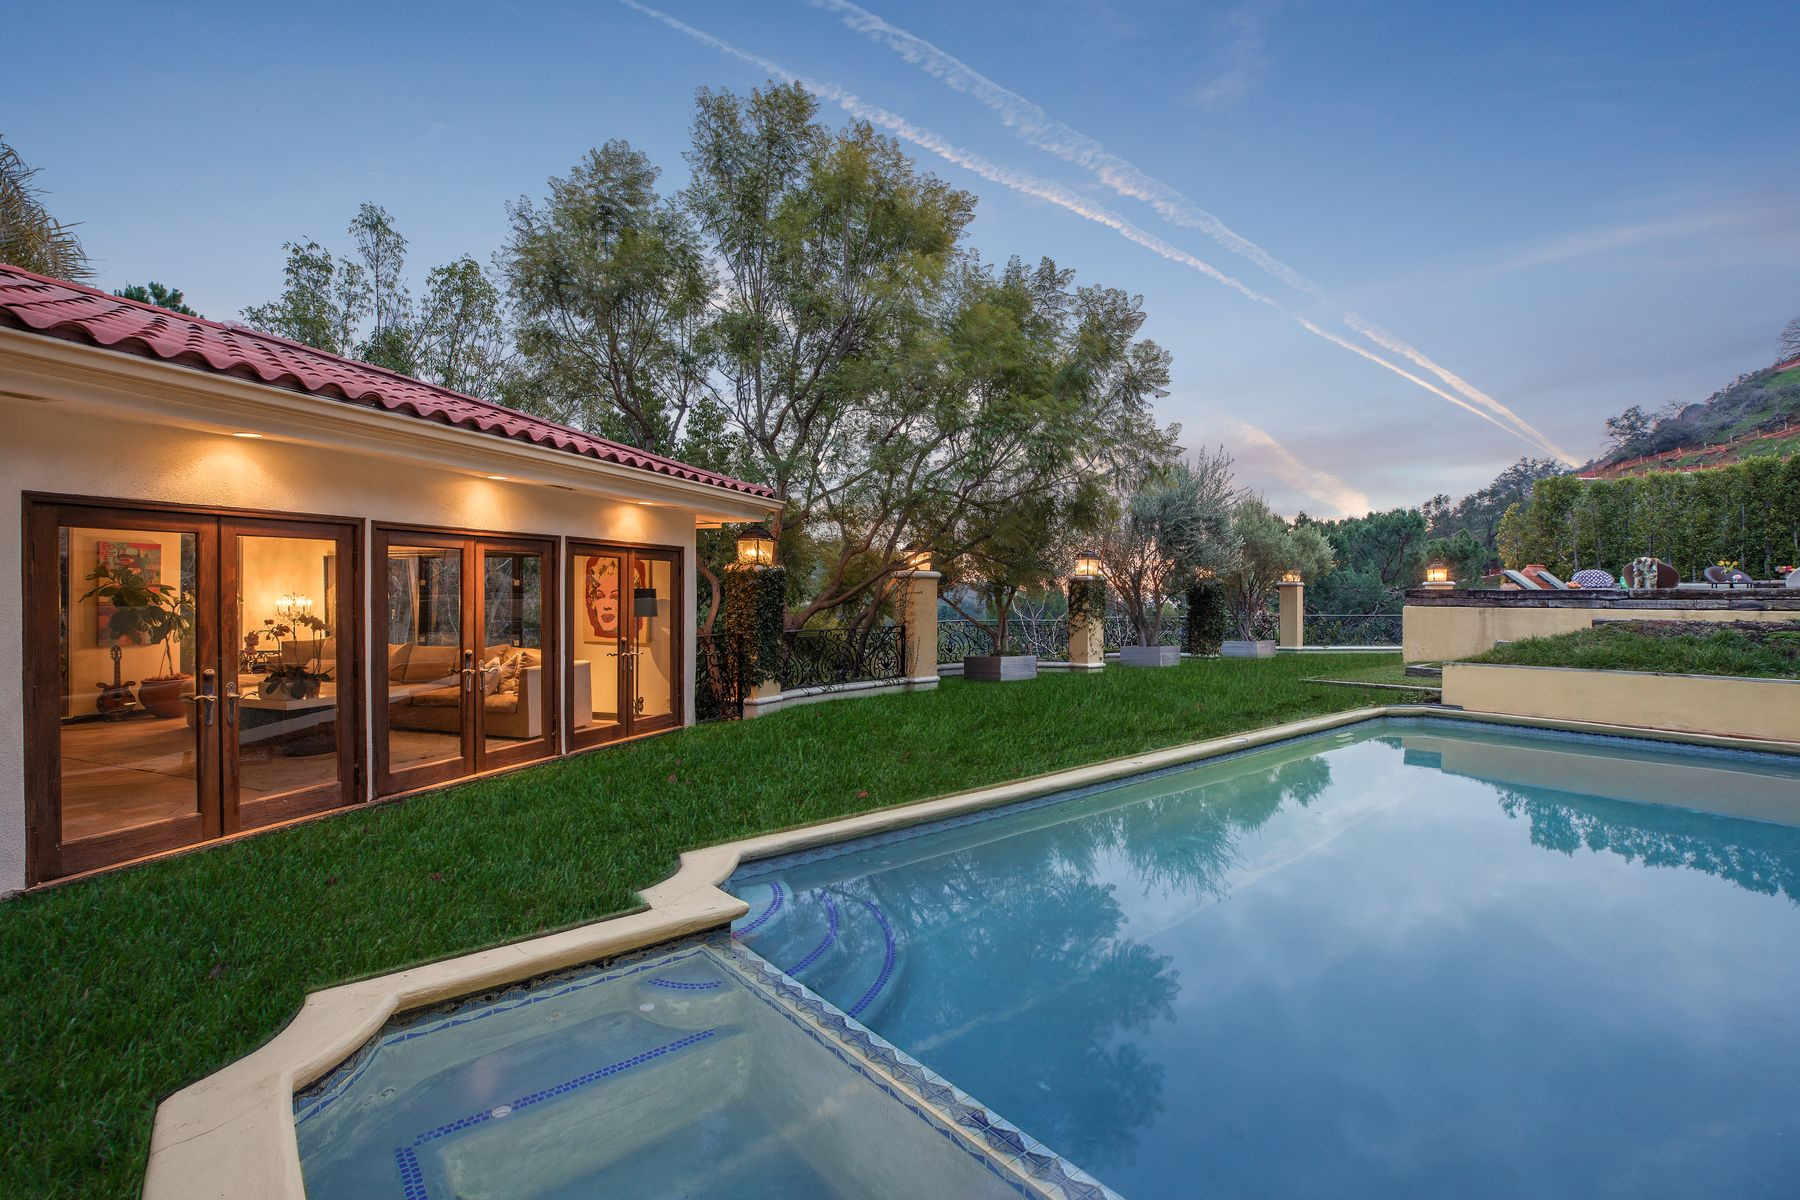 Single Family Homes for Sale at Developer's Dream in Lower BHPO 9635 Cedarbrook Drive Beverly Hills, California 90210 United States